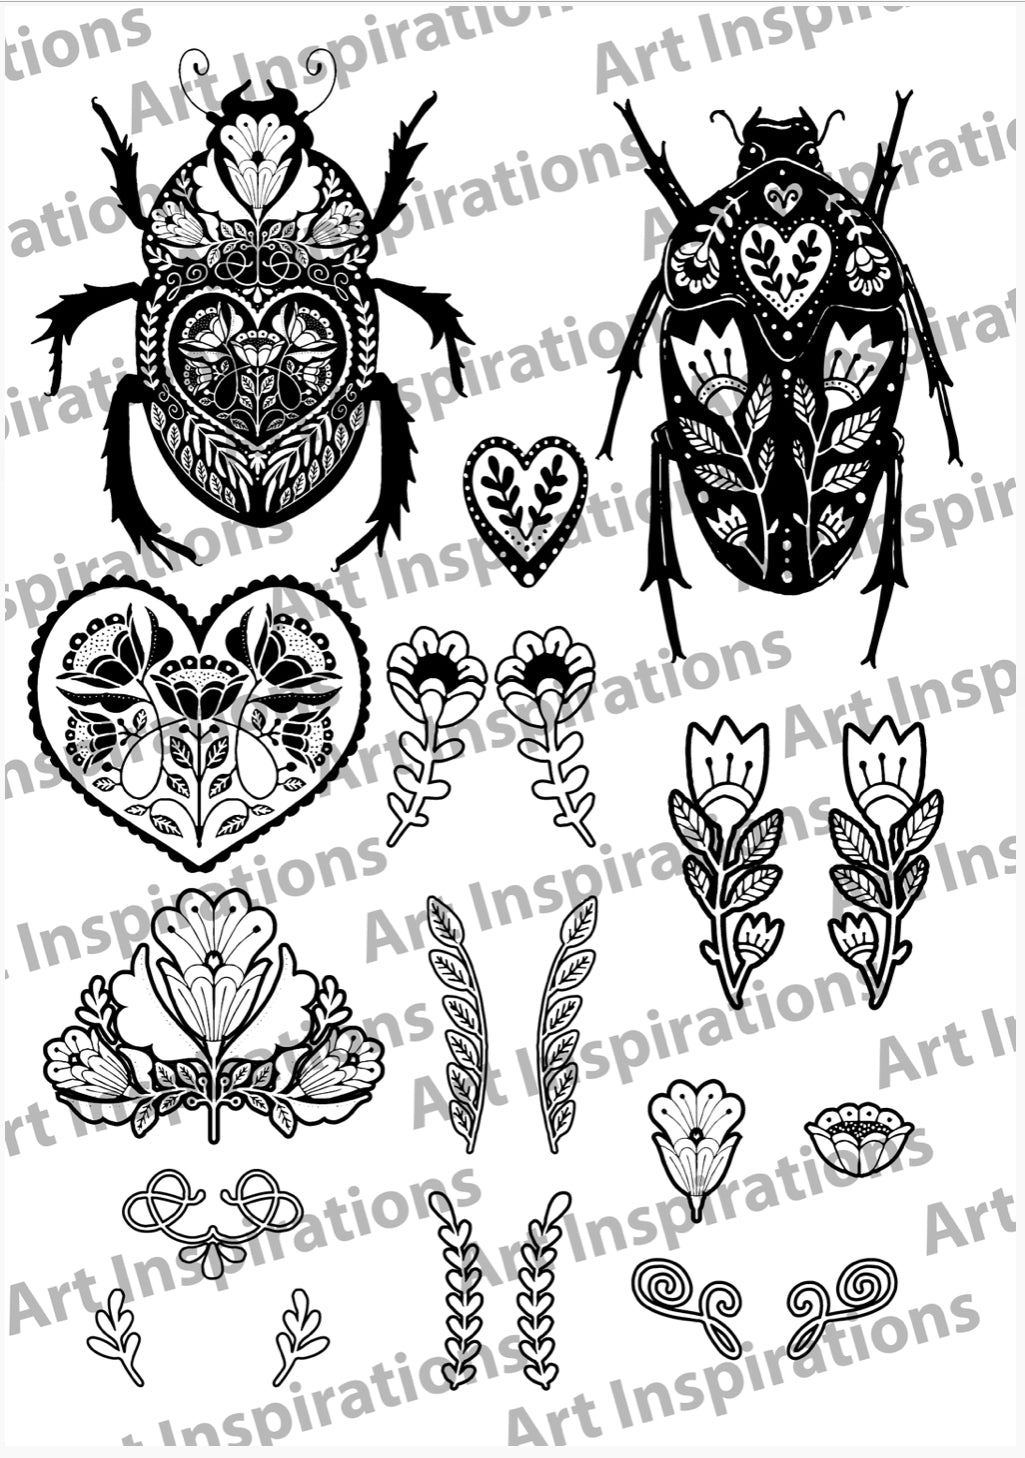 Art Inspirations by Wensdi Made A5 Clear Stamp Sheet - The Beetles - 20 Stamps